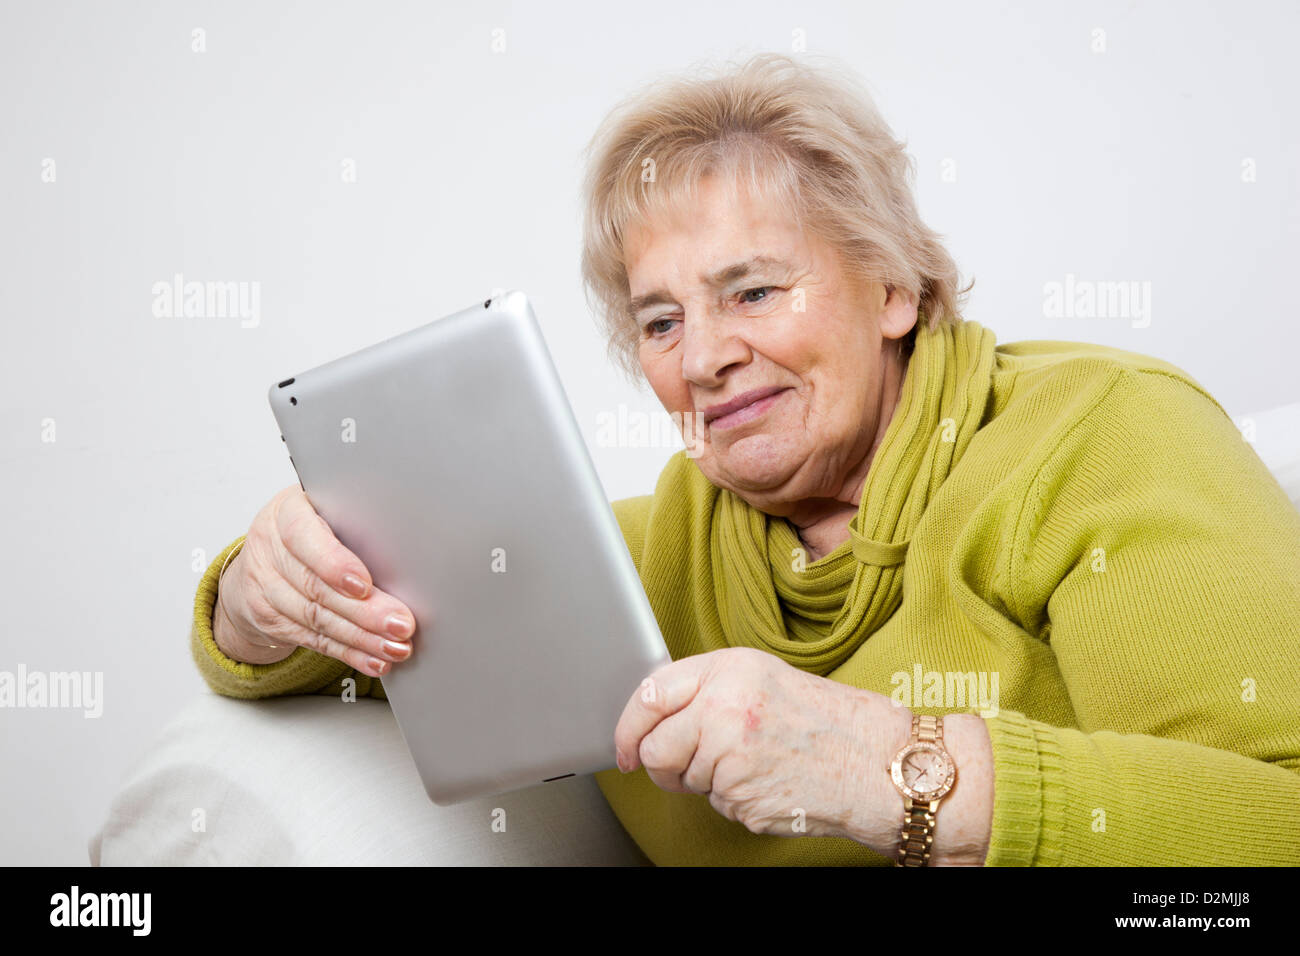 Mature lady using a digital tablet. - Stock Image